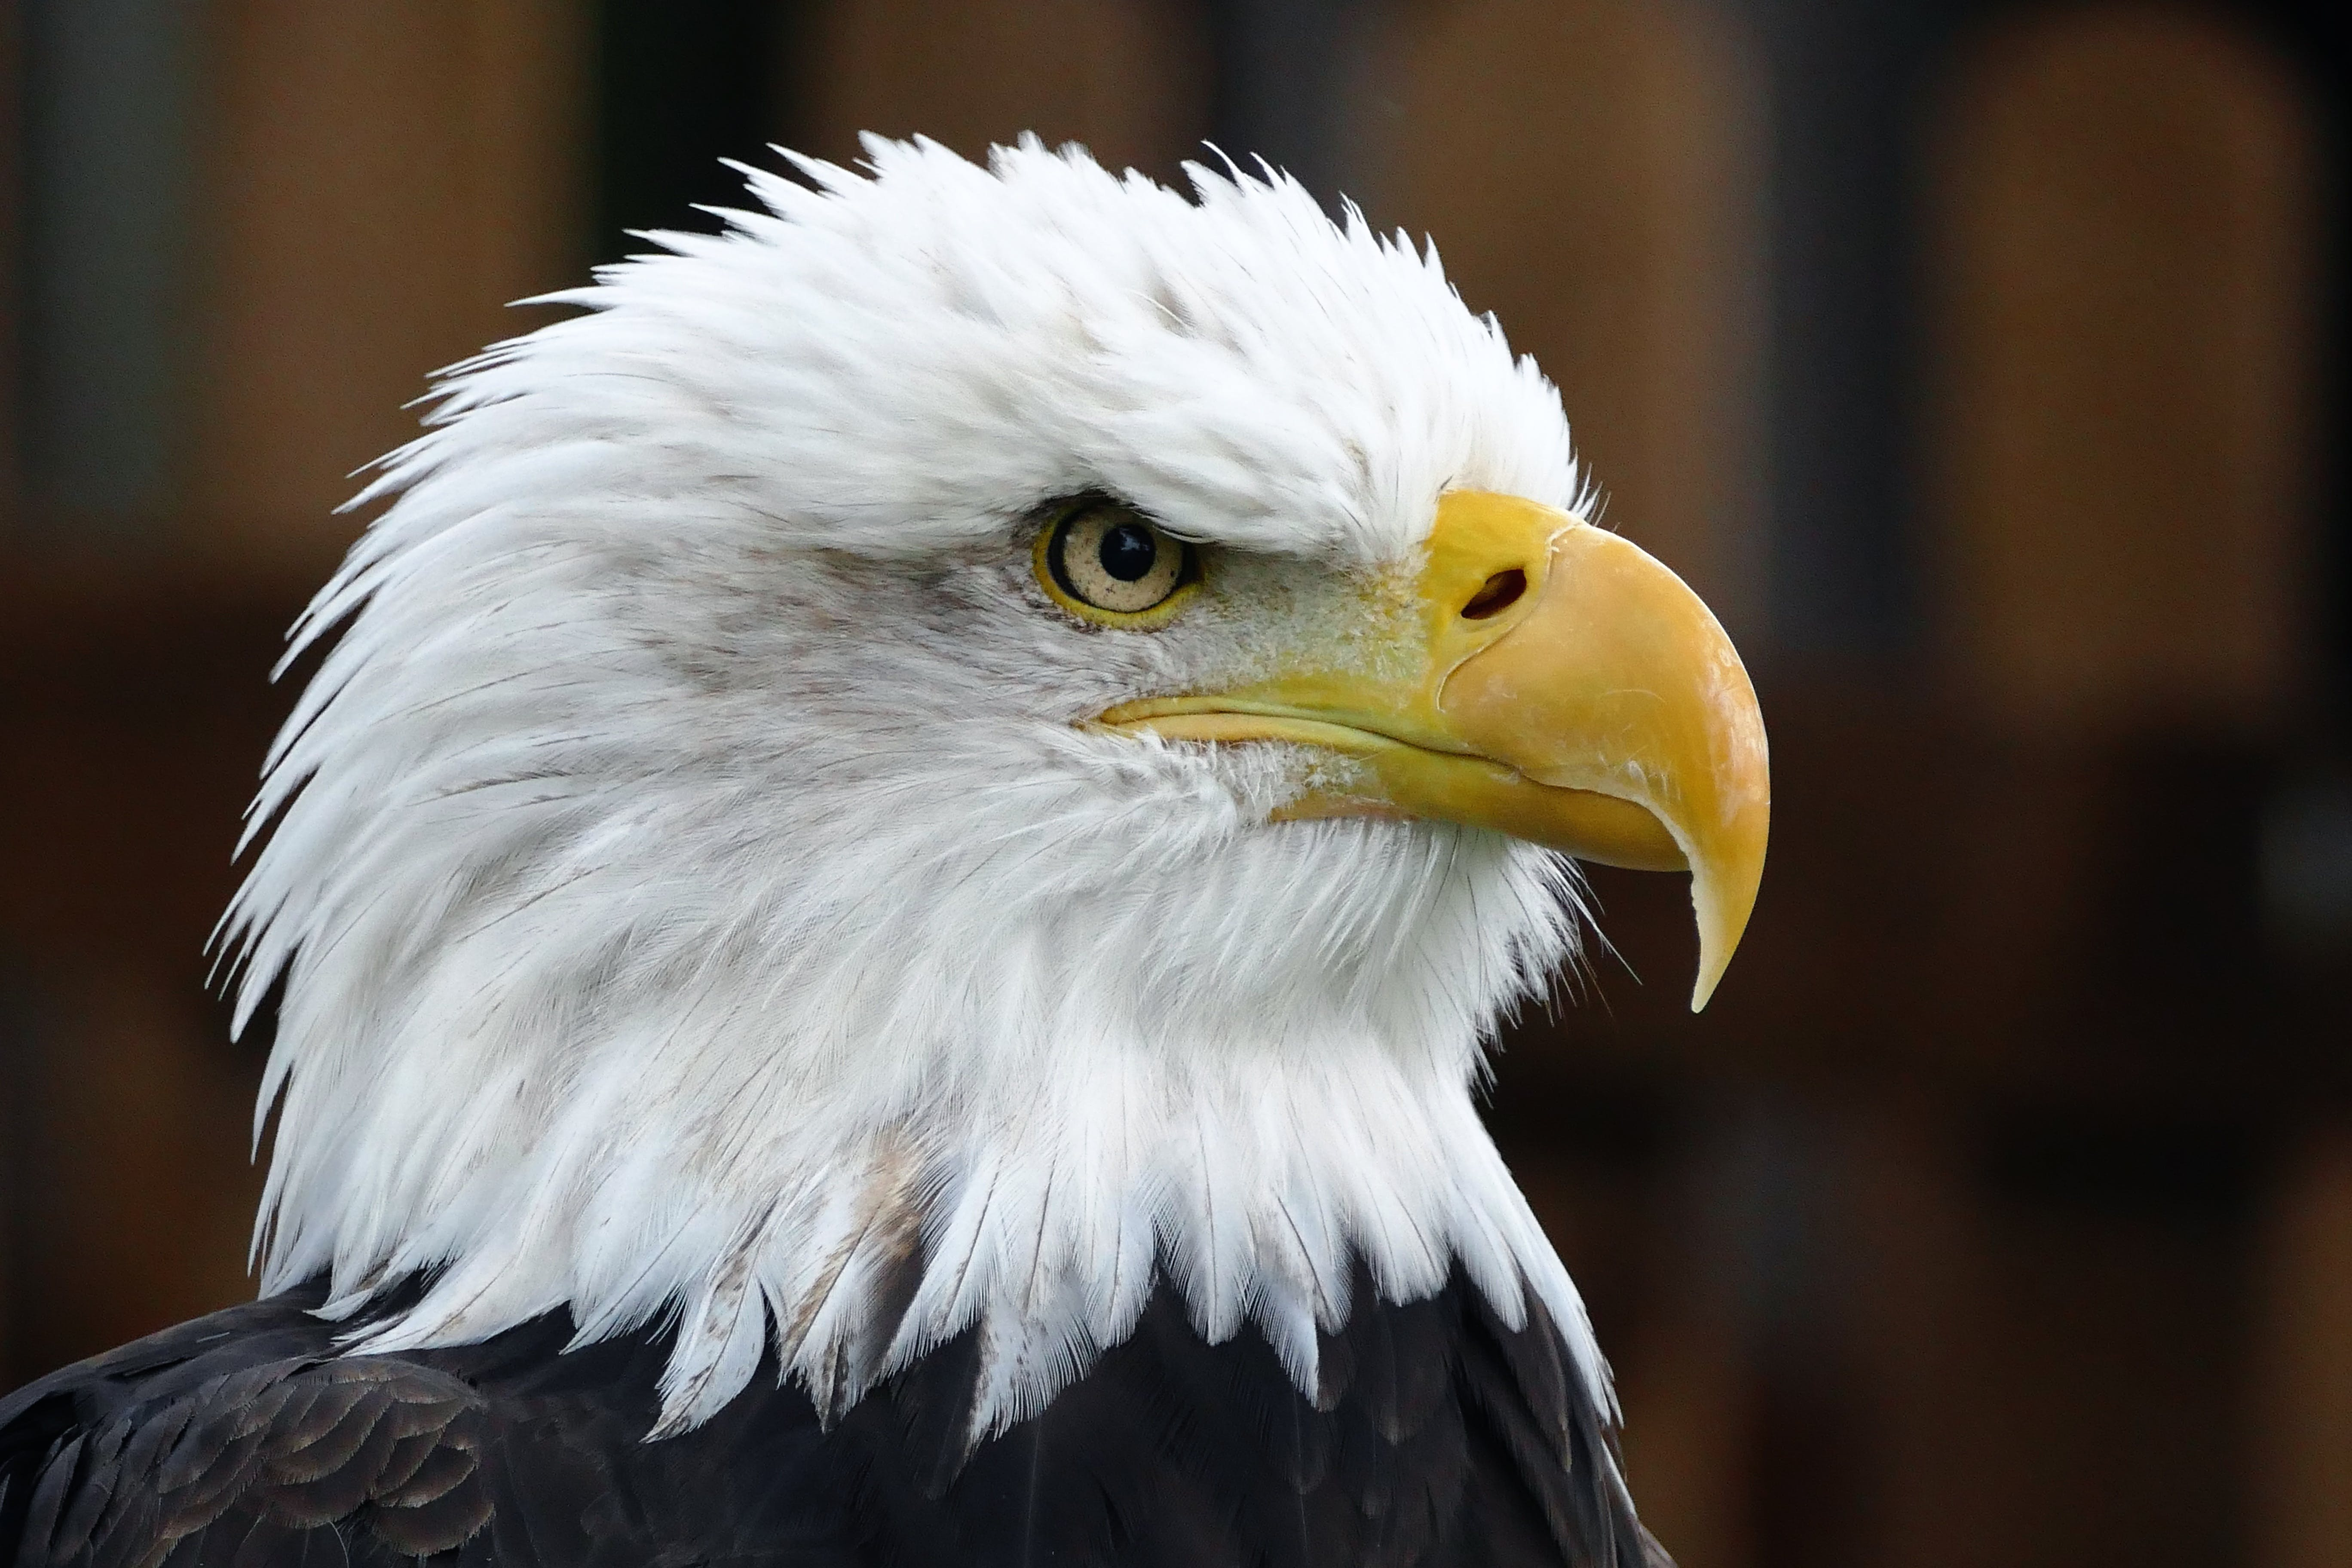 animal, avian, bald eagle